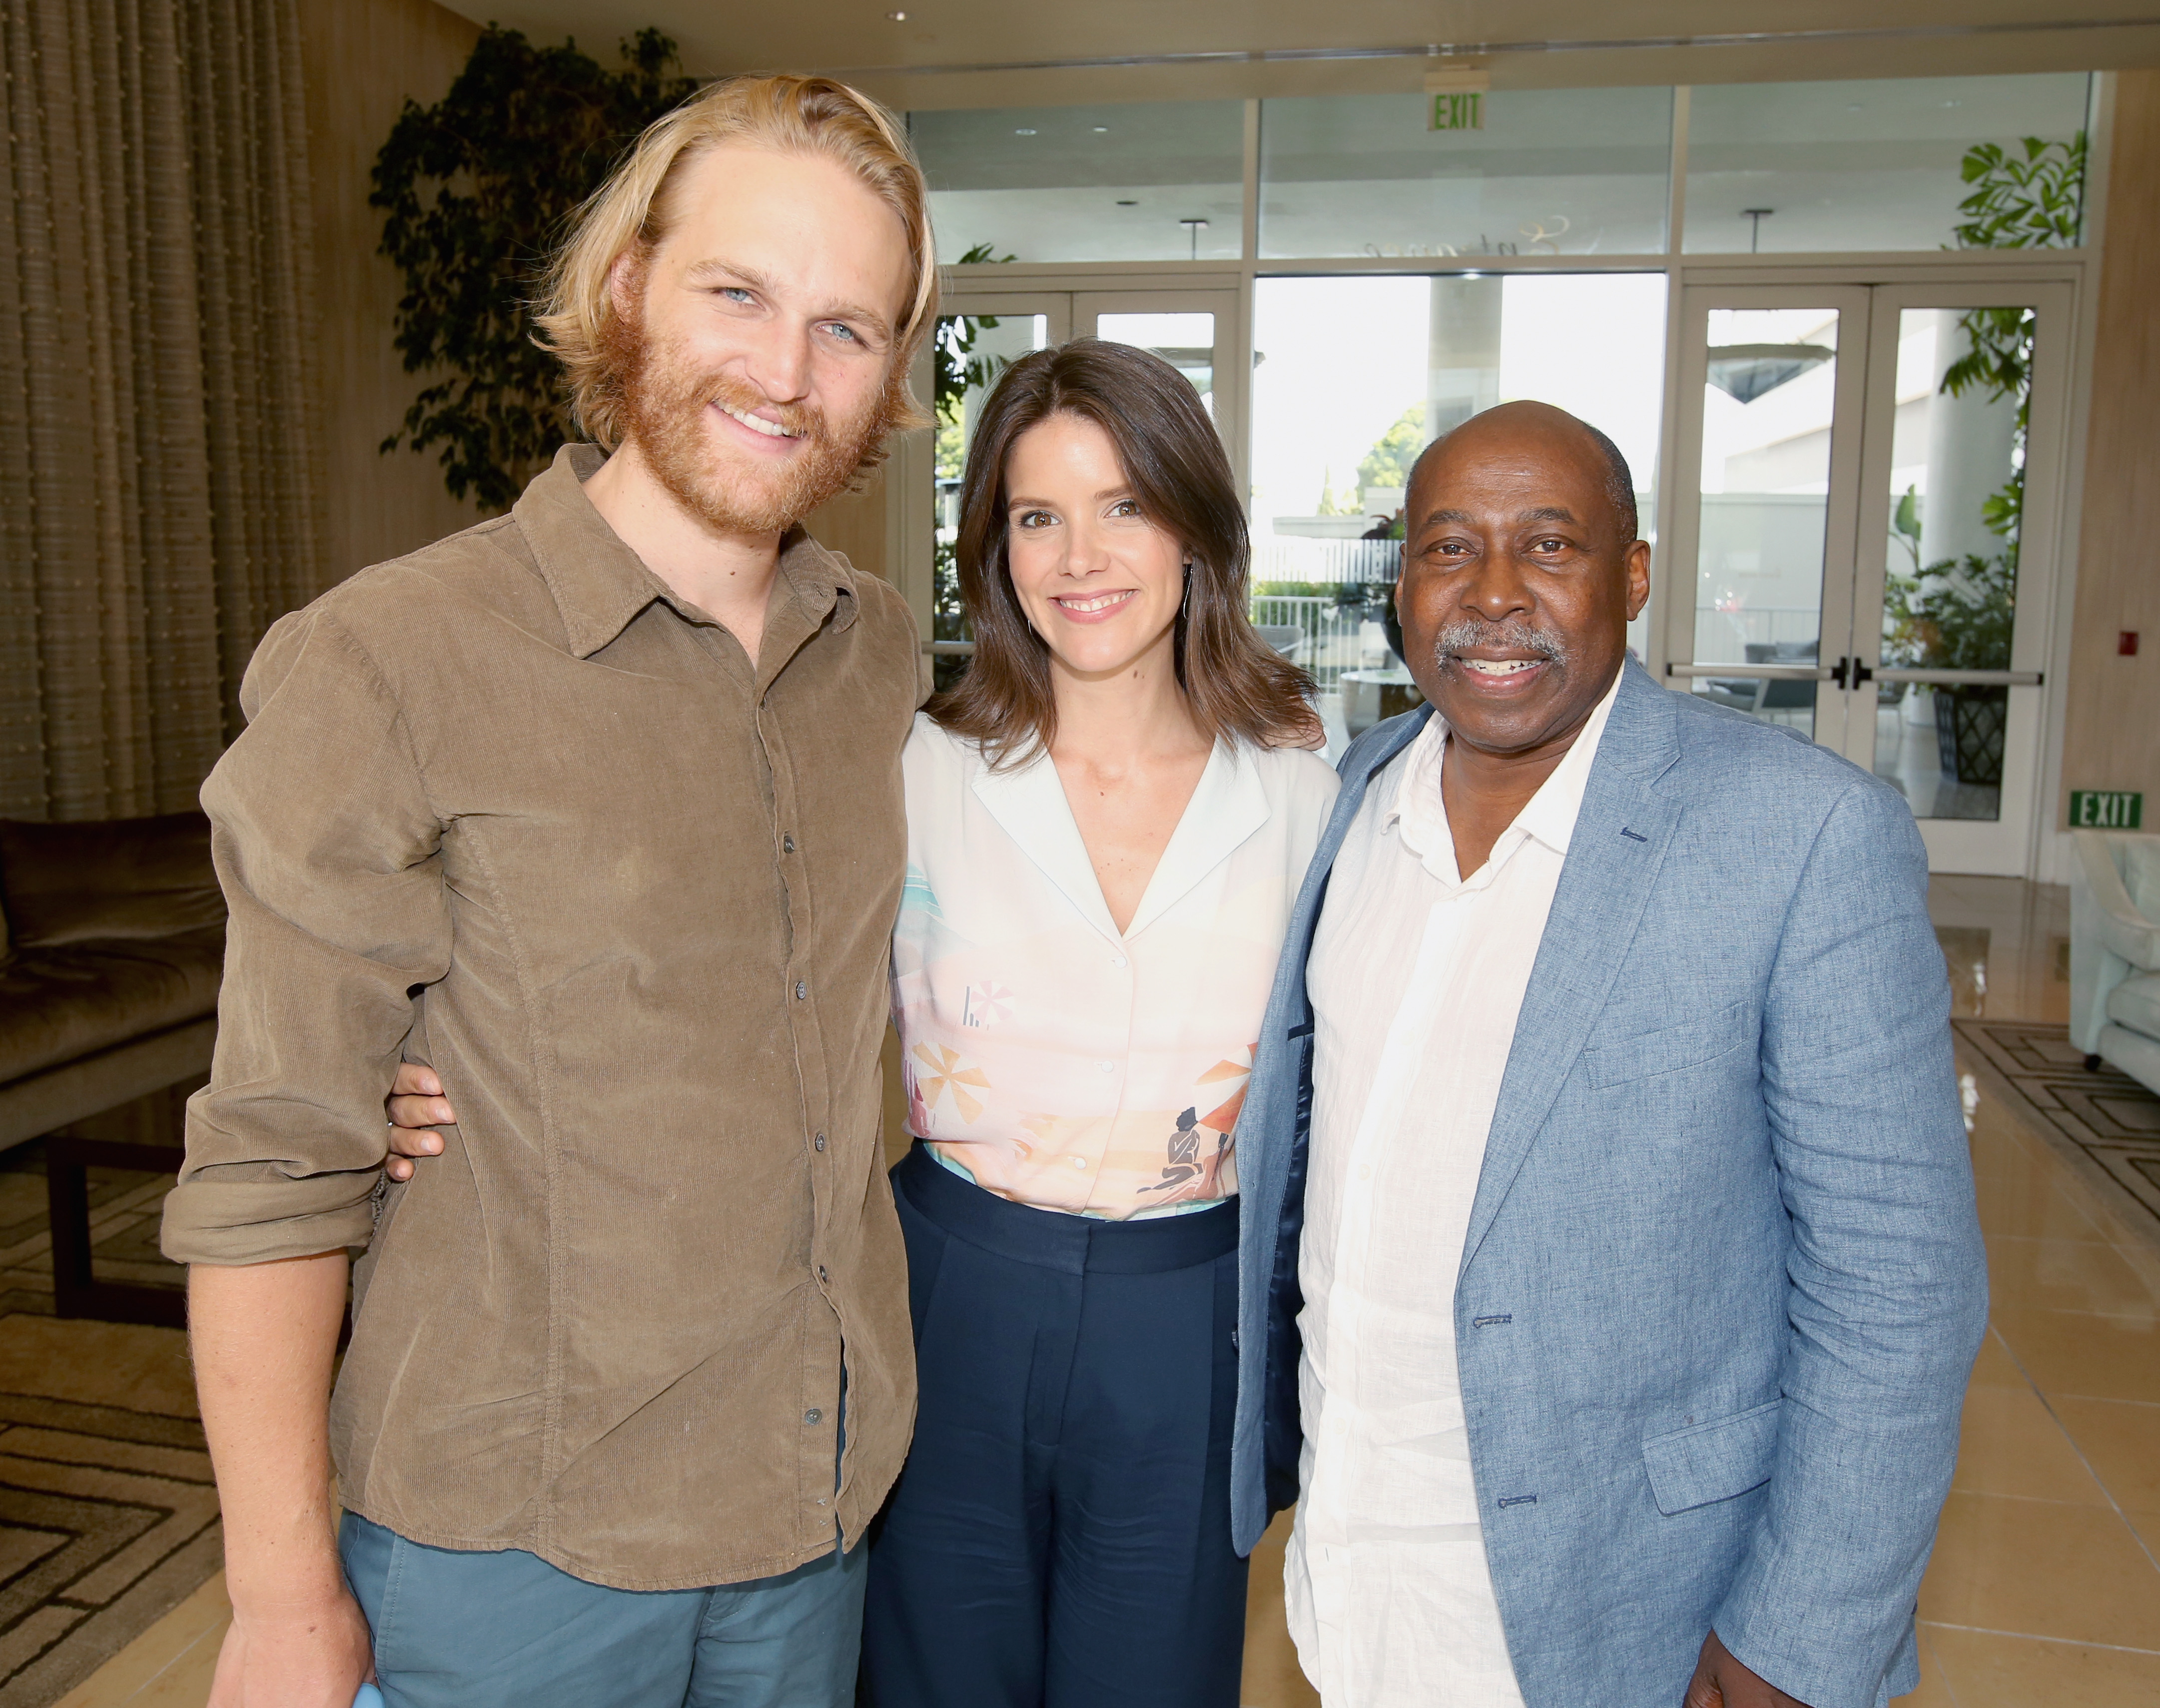 (L-R) Actors Wyatt Russell, Sonya Cassidy and Brent Jennings of 'Lodge 49' attend the AMC Networks portion of the Summer 2018 TCA Press Tour at The Beverly Hilton Hotel on July 28, 2018 in Los Angeles, California.